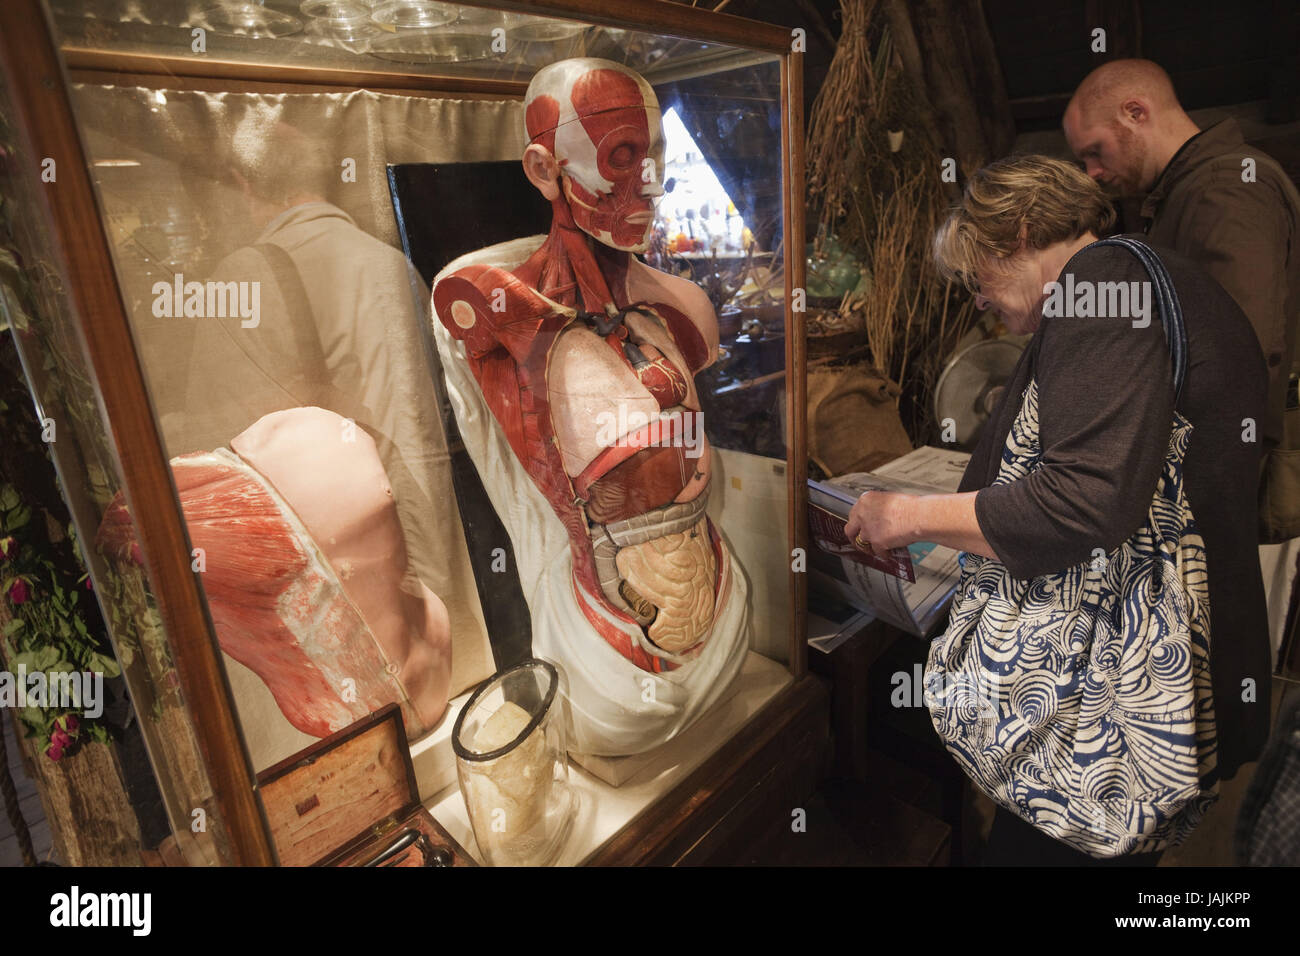 England,London,Southwark,museum 'Old Operating Theatre',exhibit,human body, - Stock Image